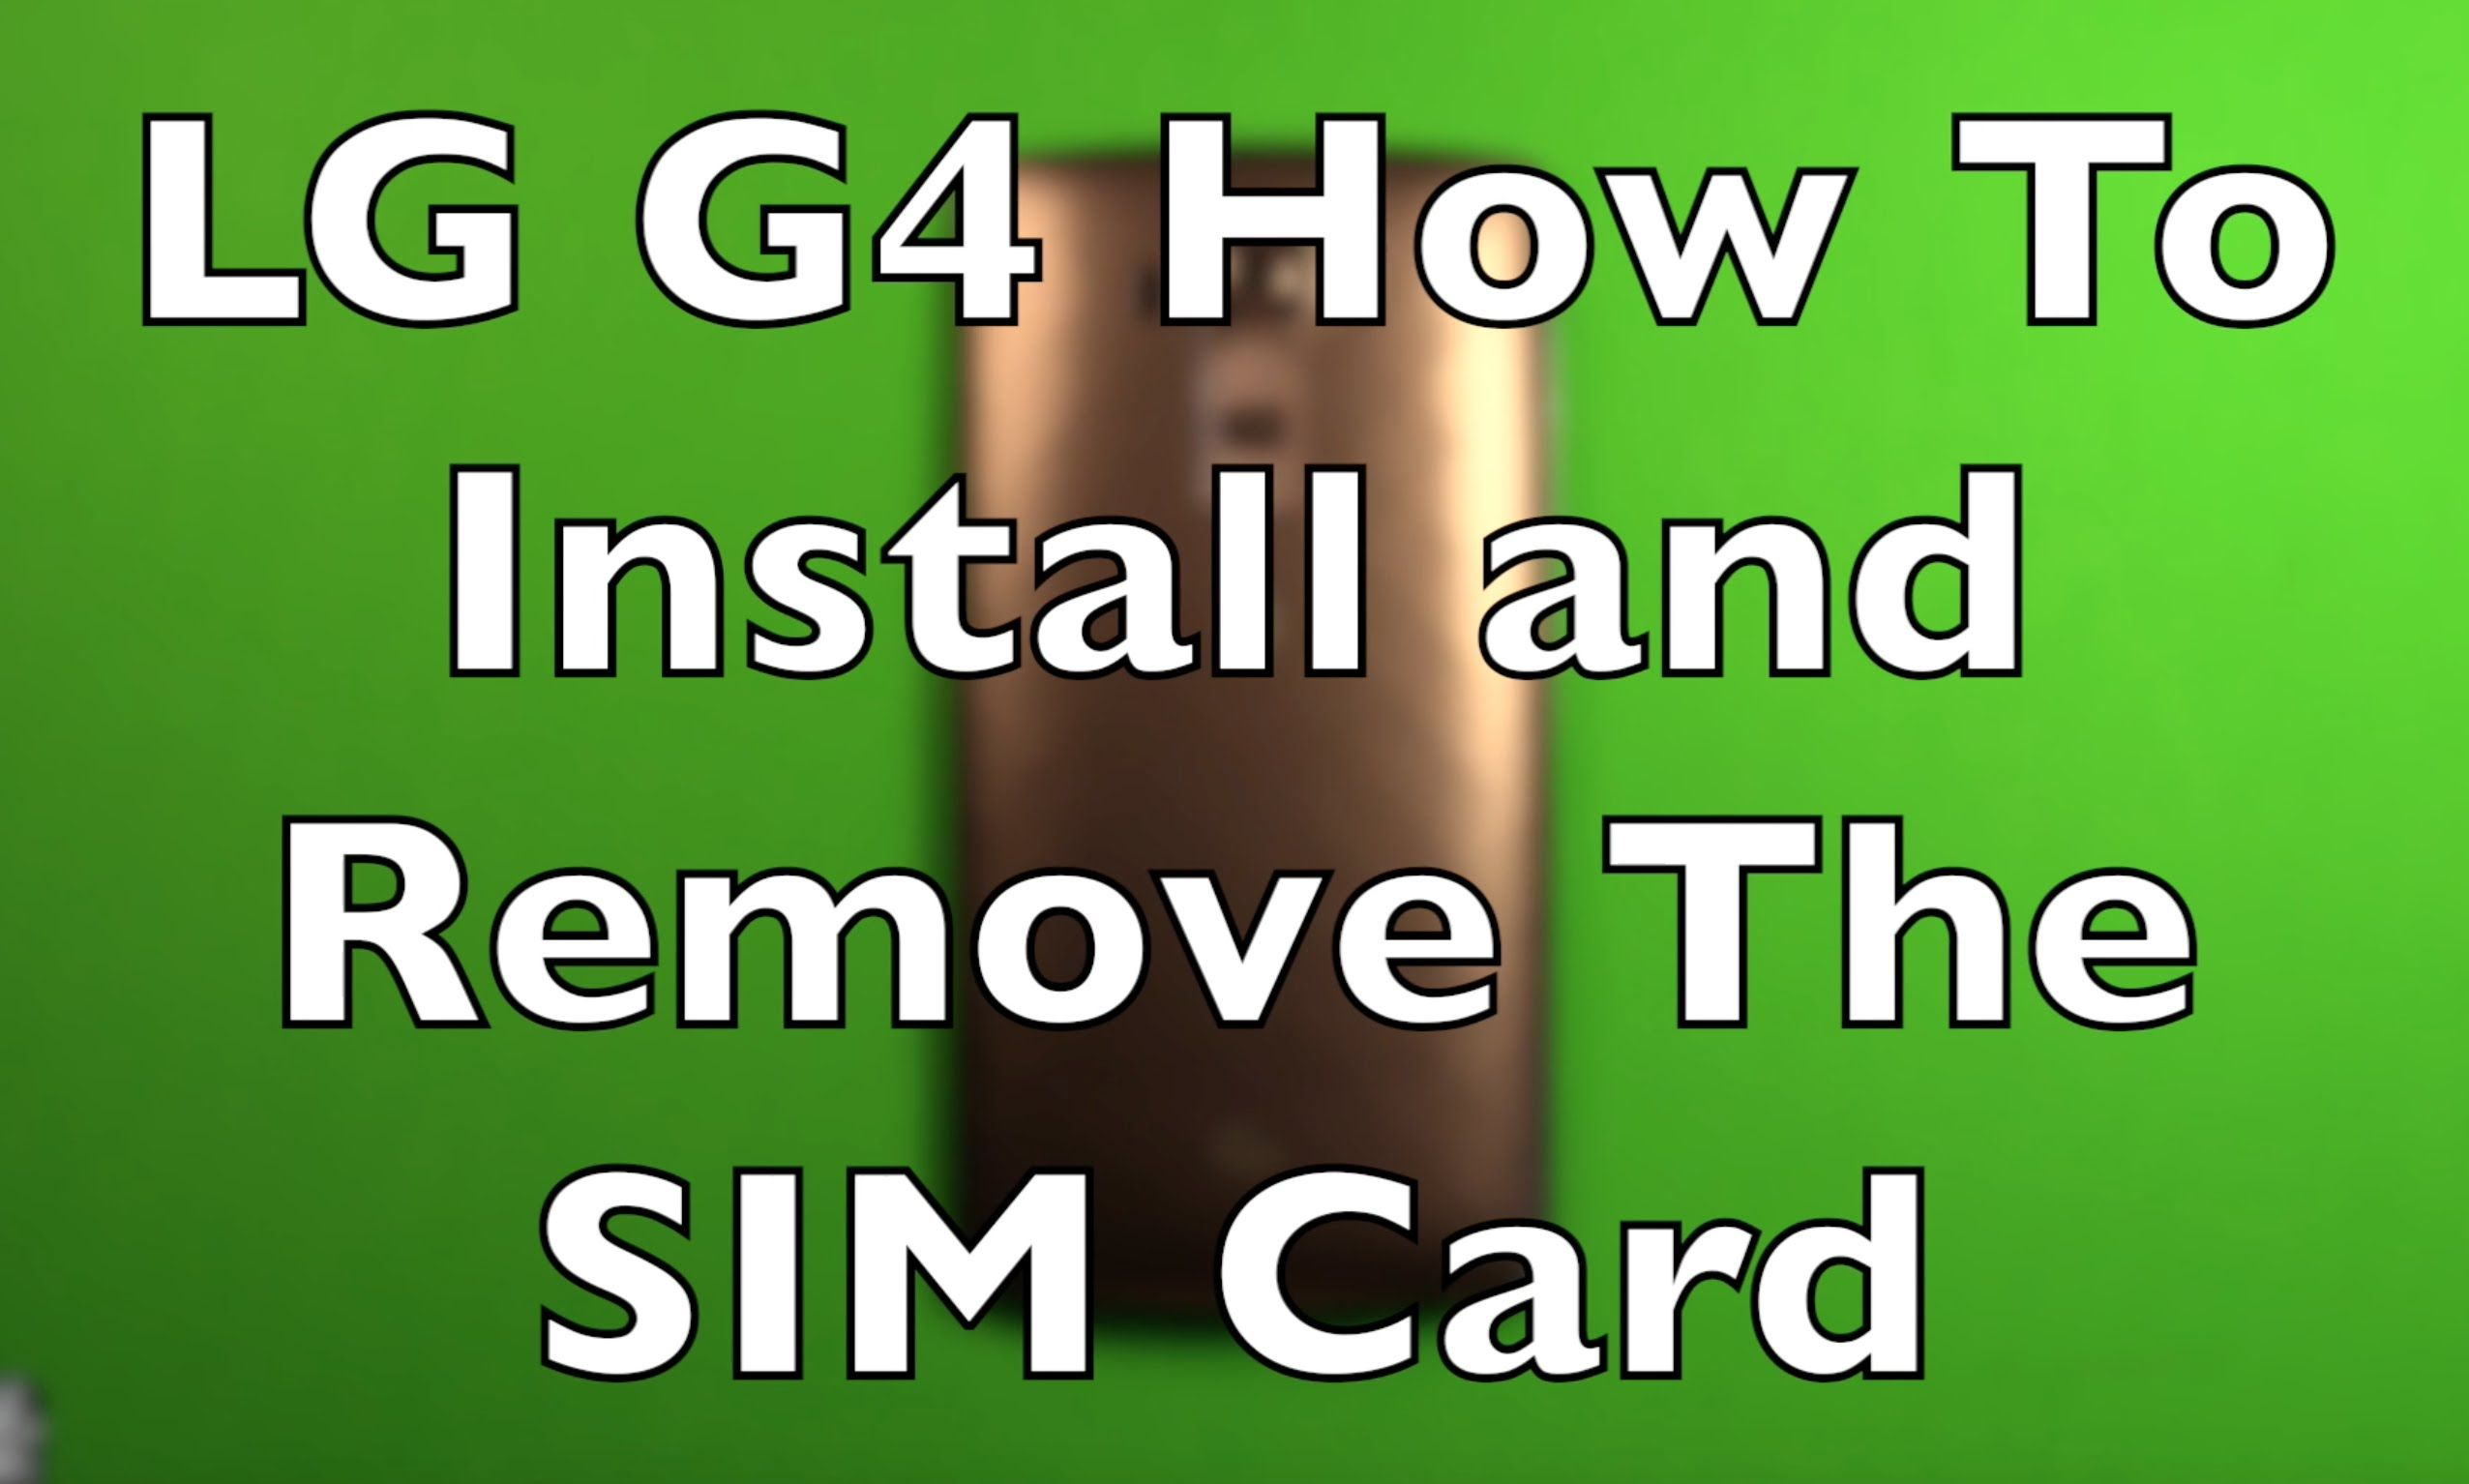 Lg g4 how to remove and install the sim card screen